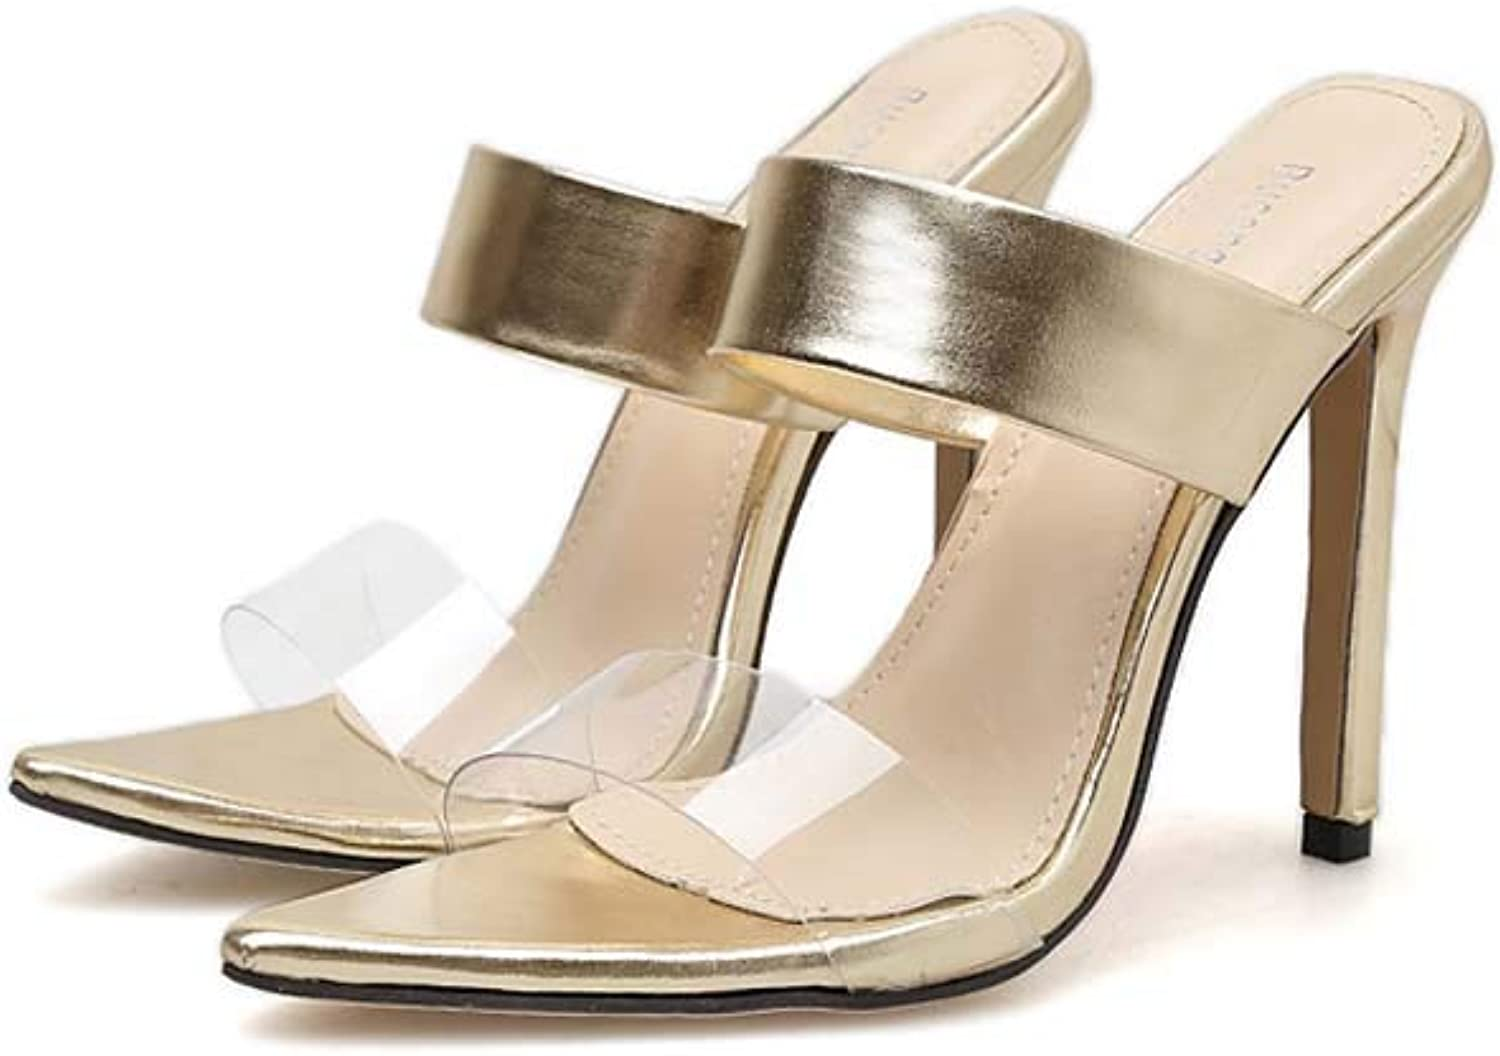 GHFJDO Damen Sommer Lucite Lucite Lucite Clear Sandalen, Pointed Open Toe Mode High Heels Hausschuhe, Loose Comfy Platform Walking Schuhe,Gold,36EU d5aecb